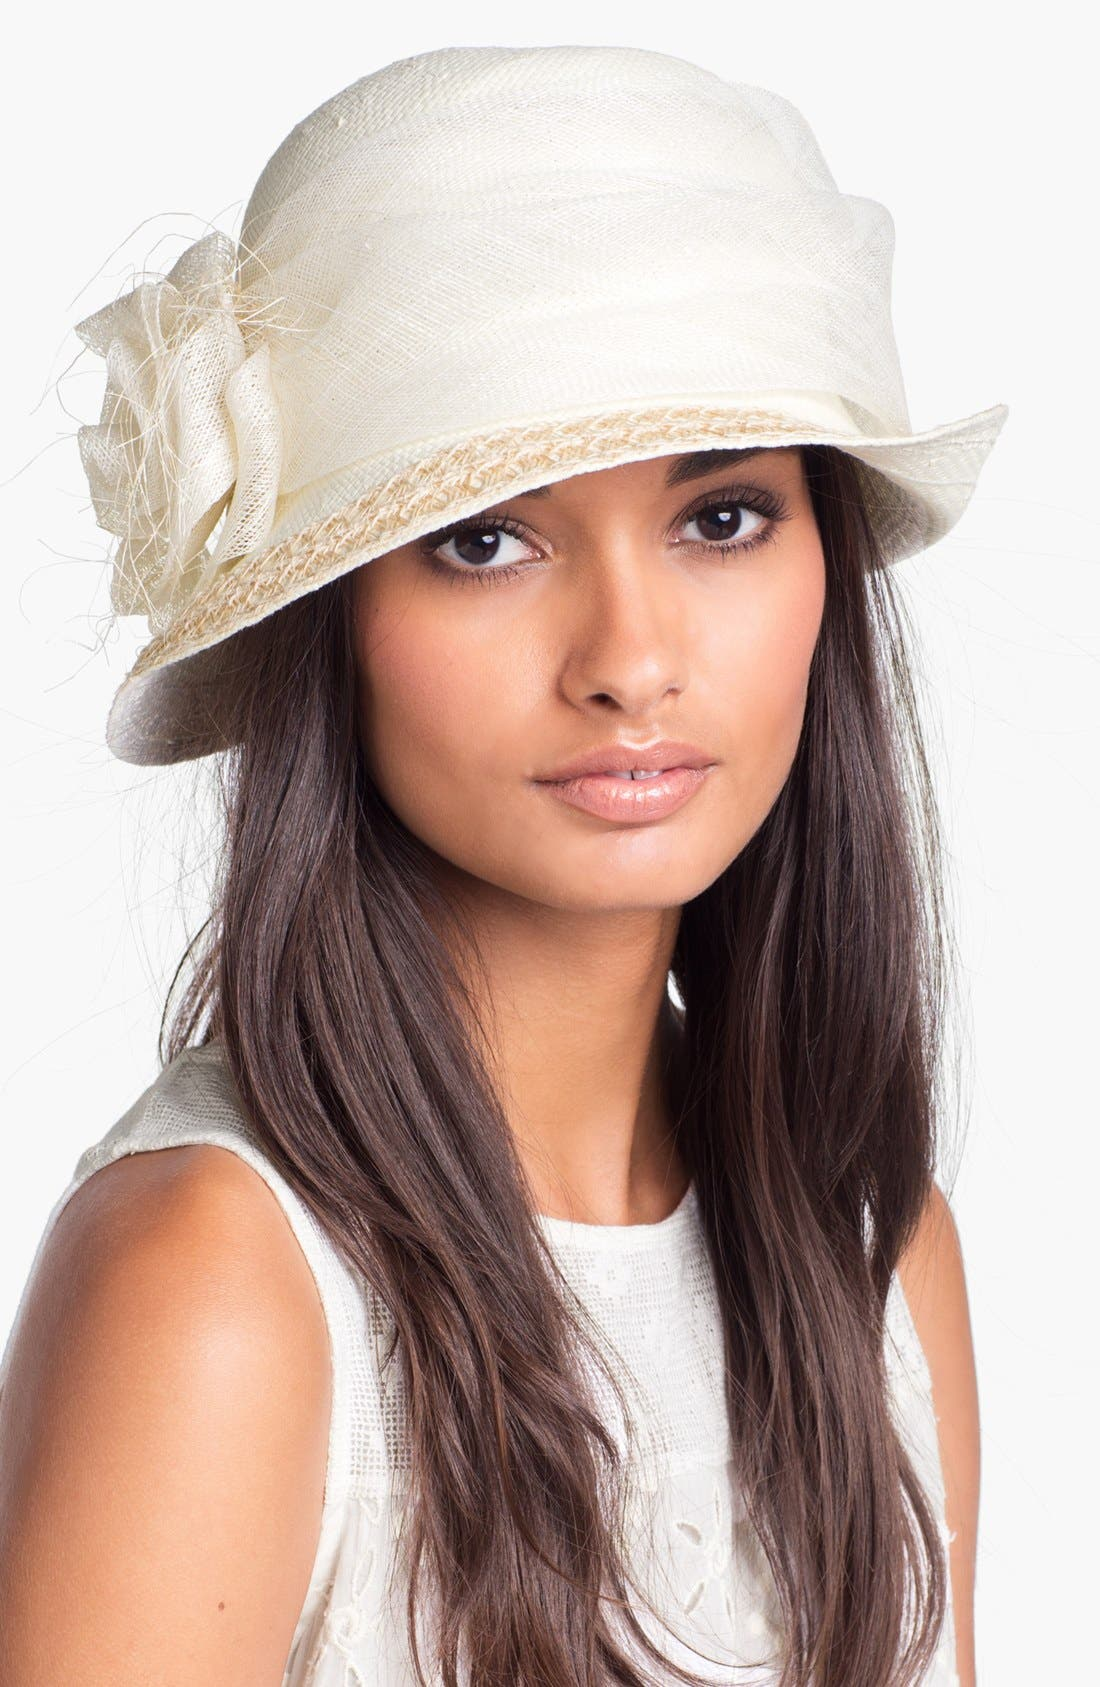 Alternate Image 1 Selected - Nordstrom Woven Straw Cloche